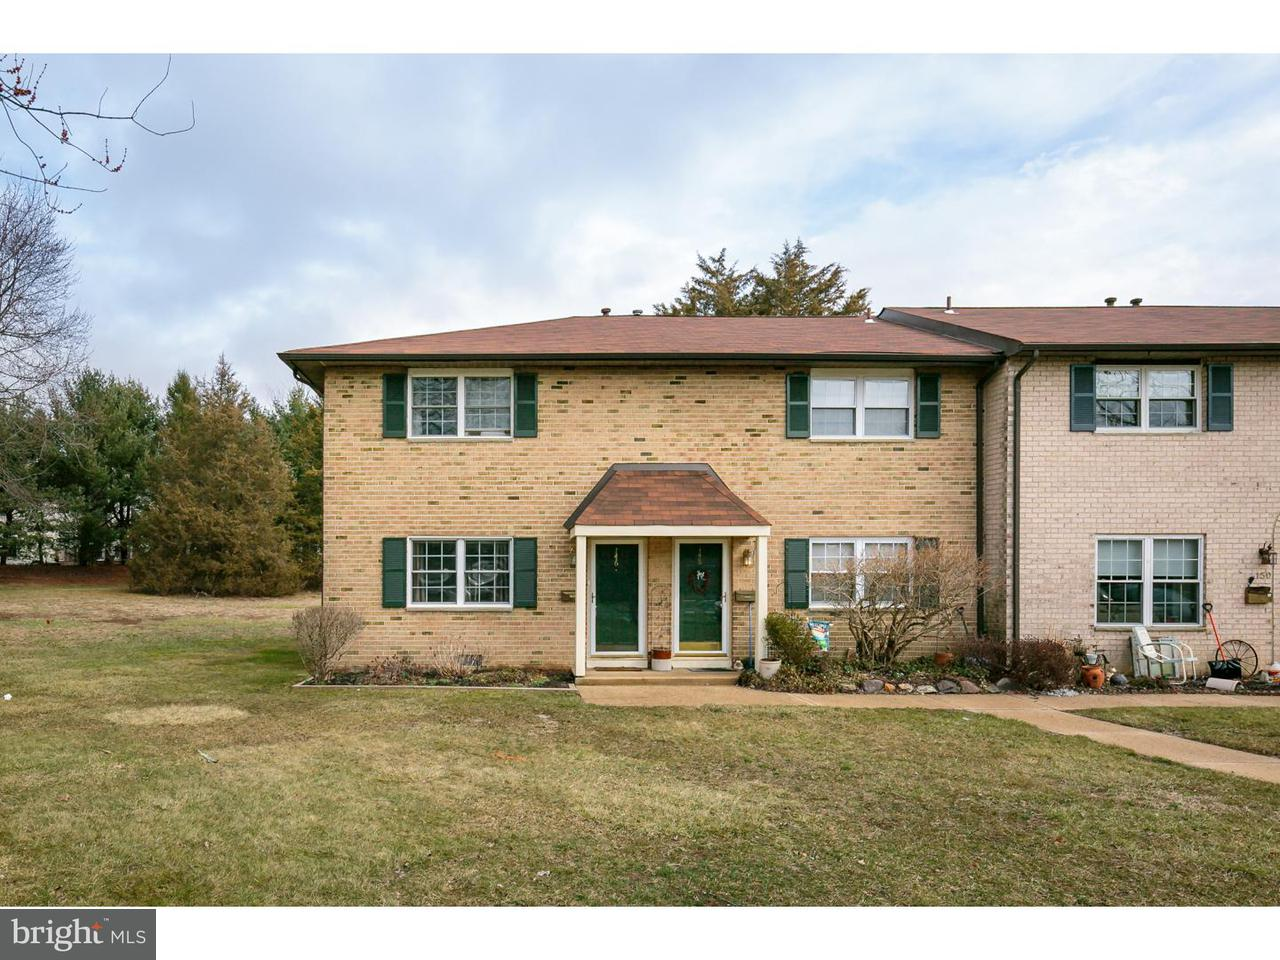 Townhouse for Sale at 146 EAVES MILL Road Medford, New Jersey 08055 United States